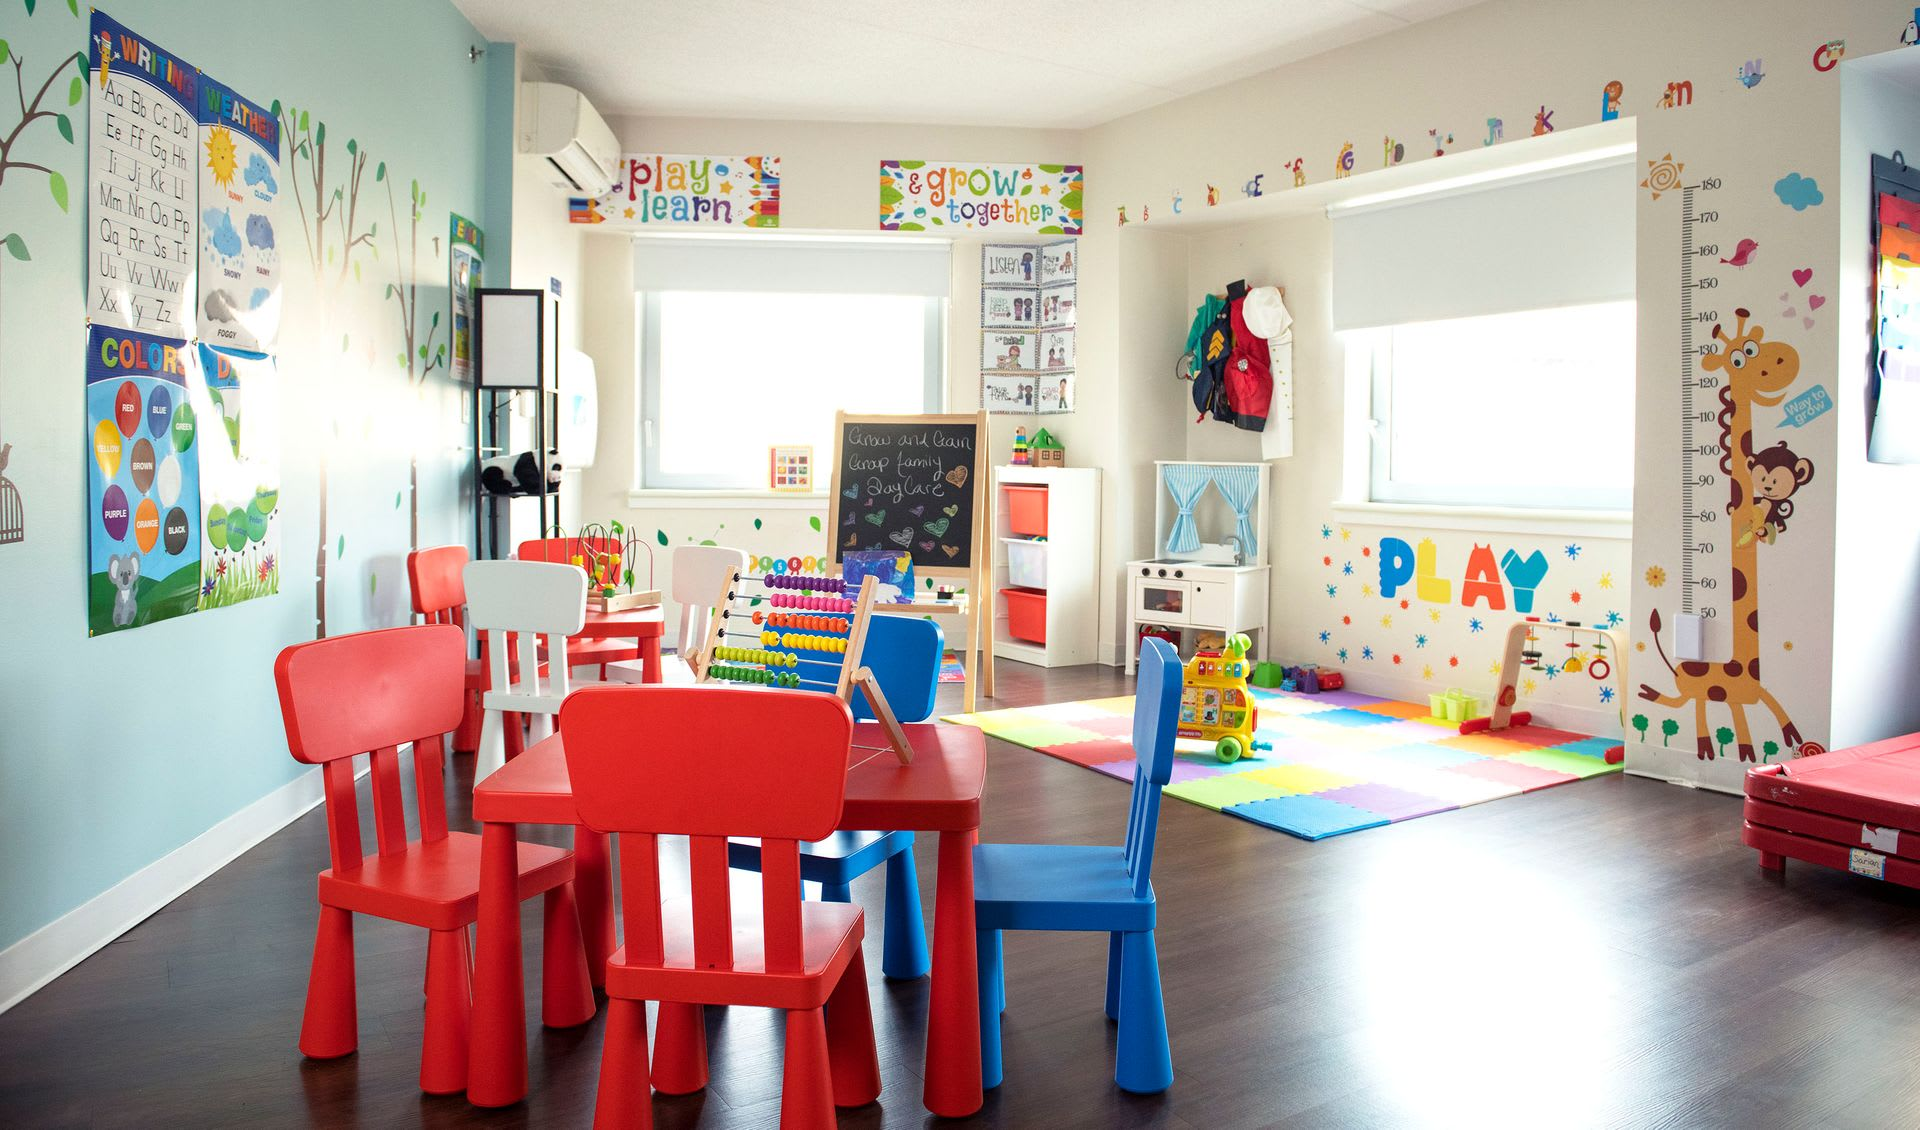 Photo of a home daycare